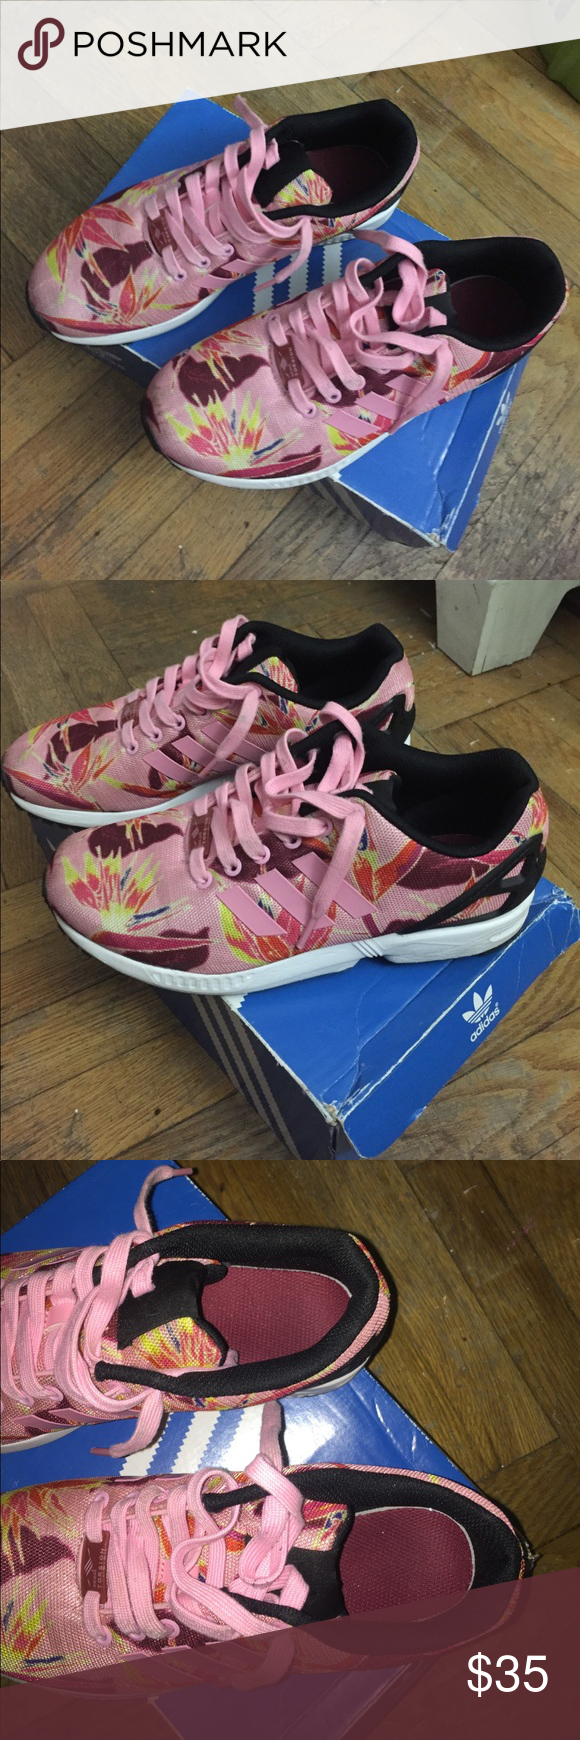 Adidas ZX Flux Size 7, fits a 8/8.5 in women's adidas Shoes